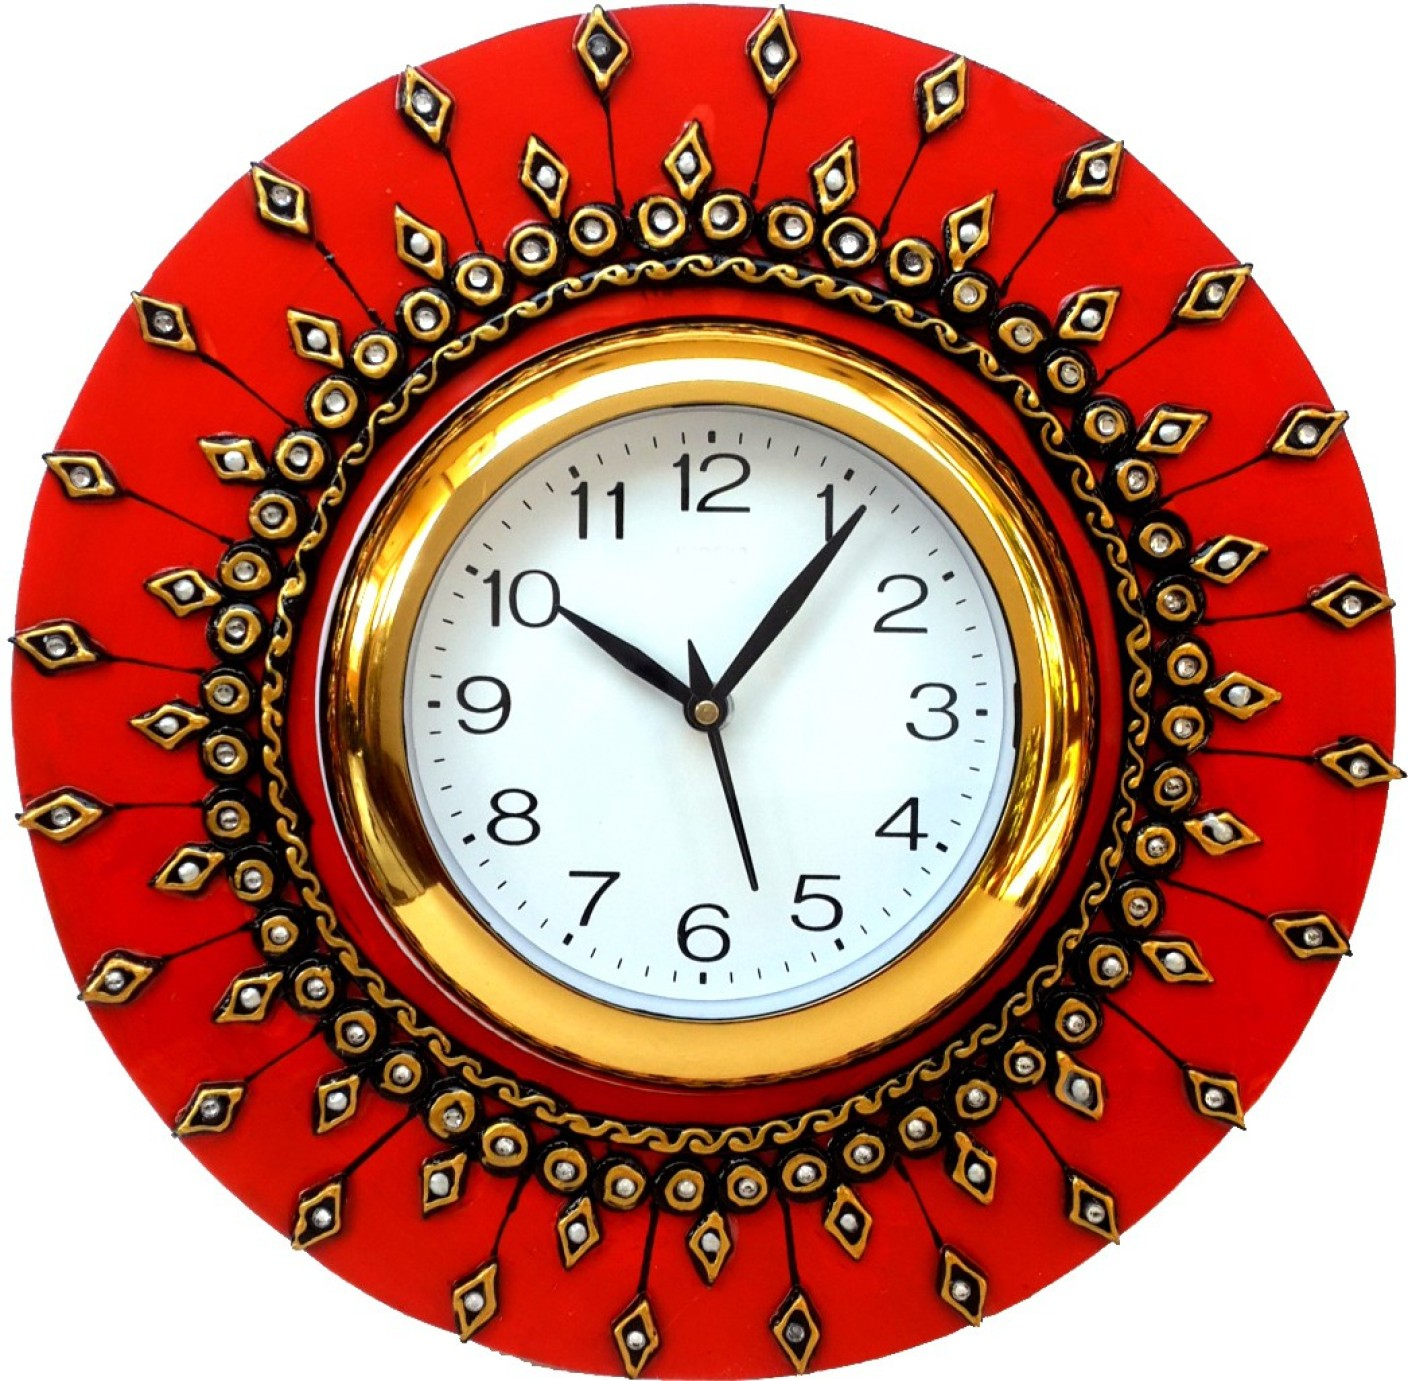 DivineCrafts Analog Wall Clock Price in India